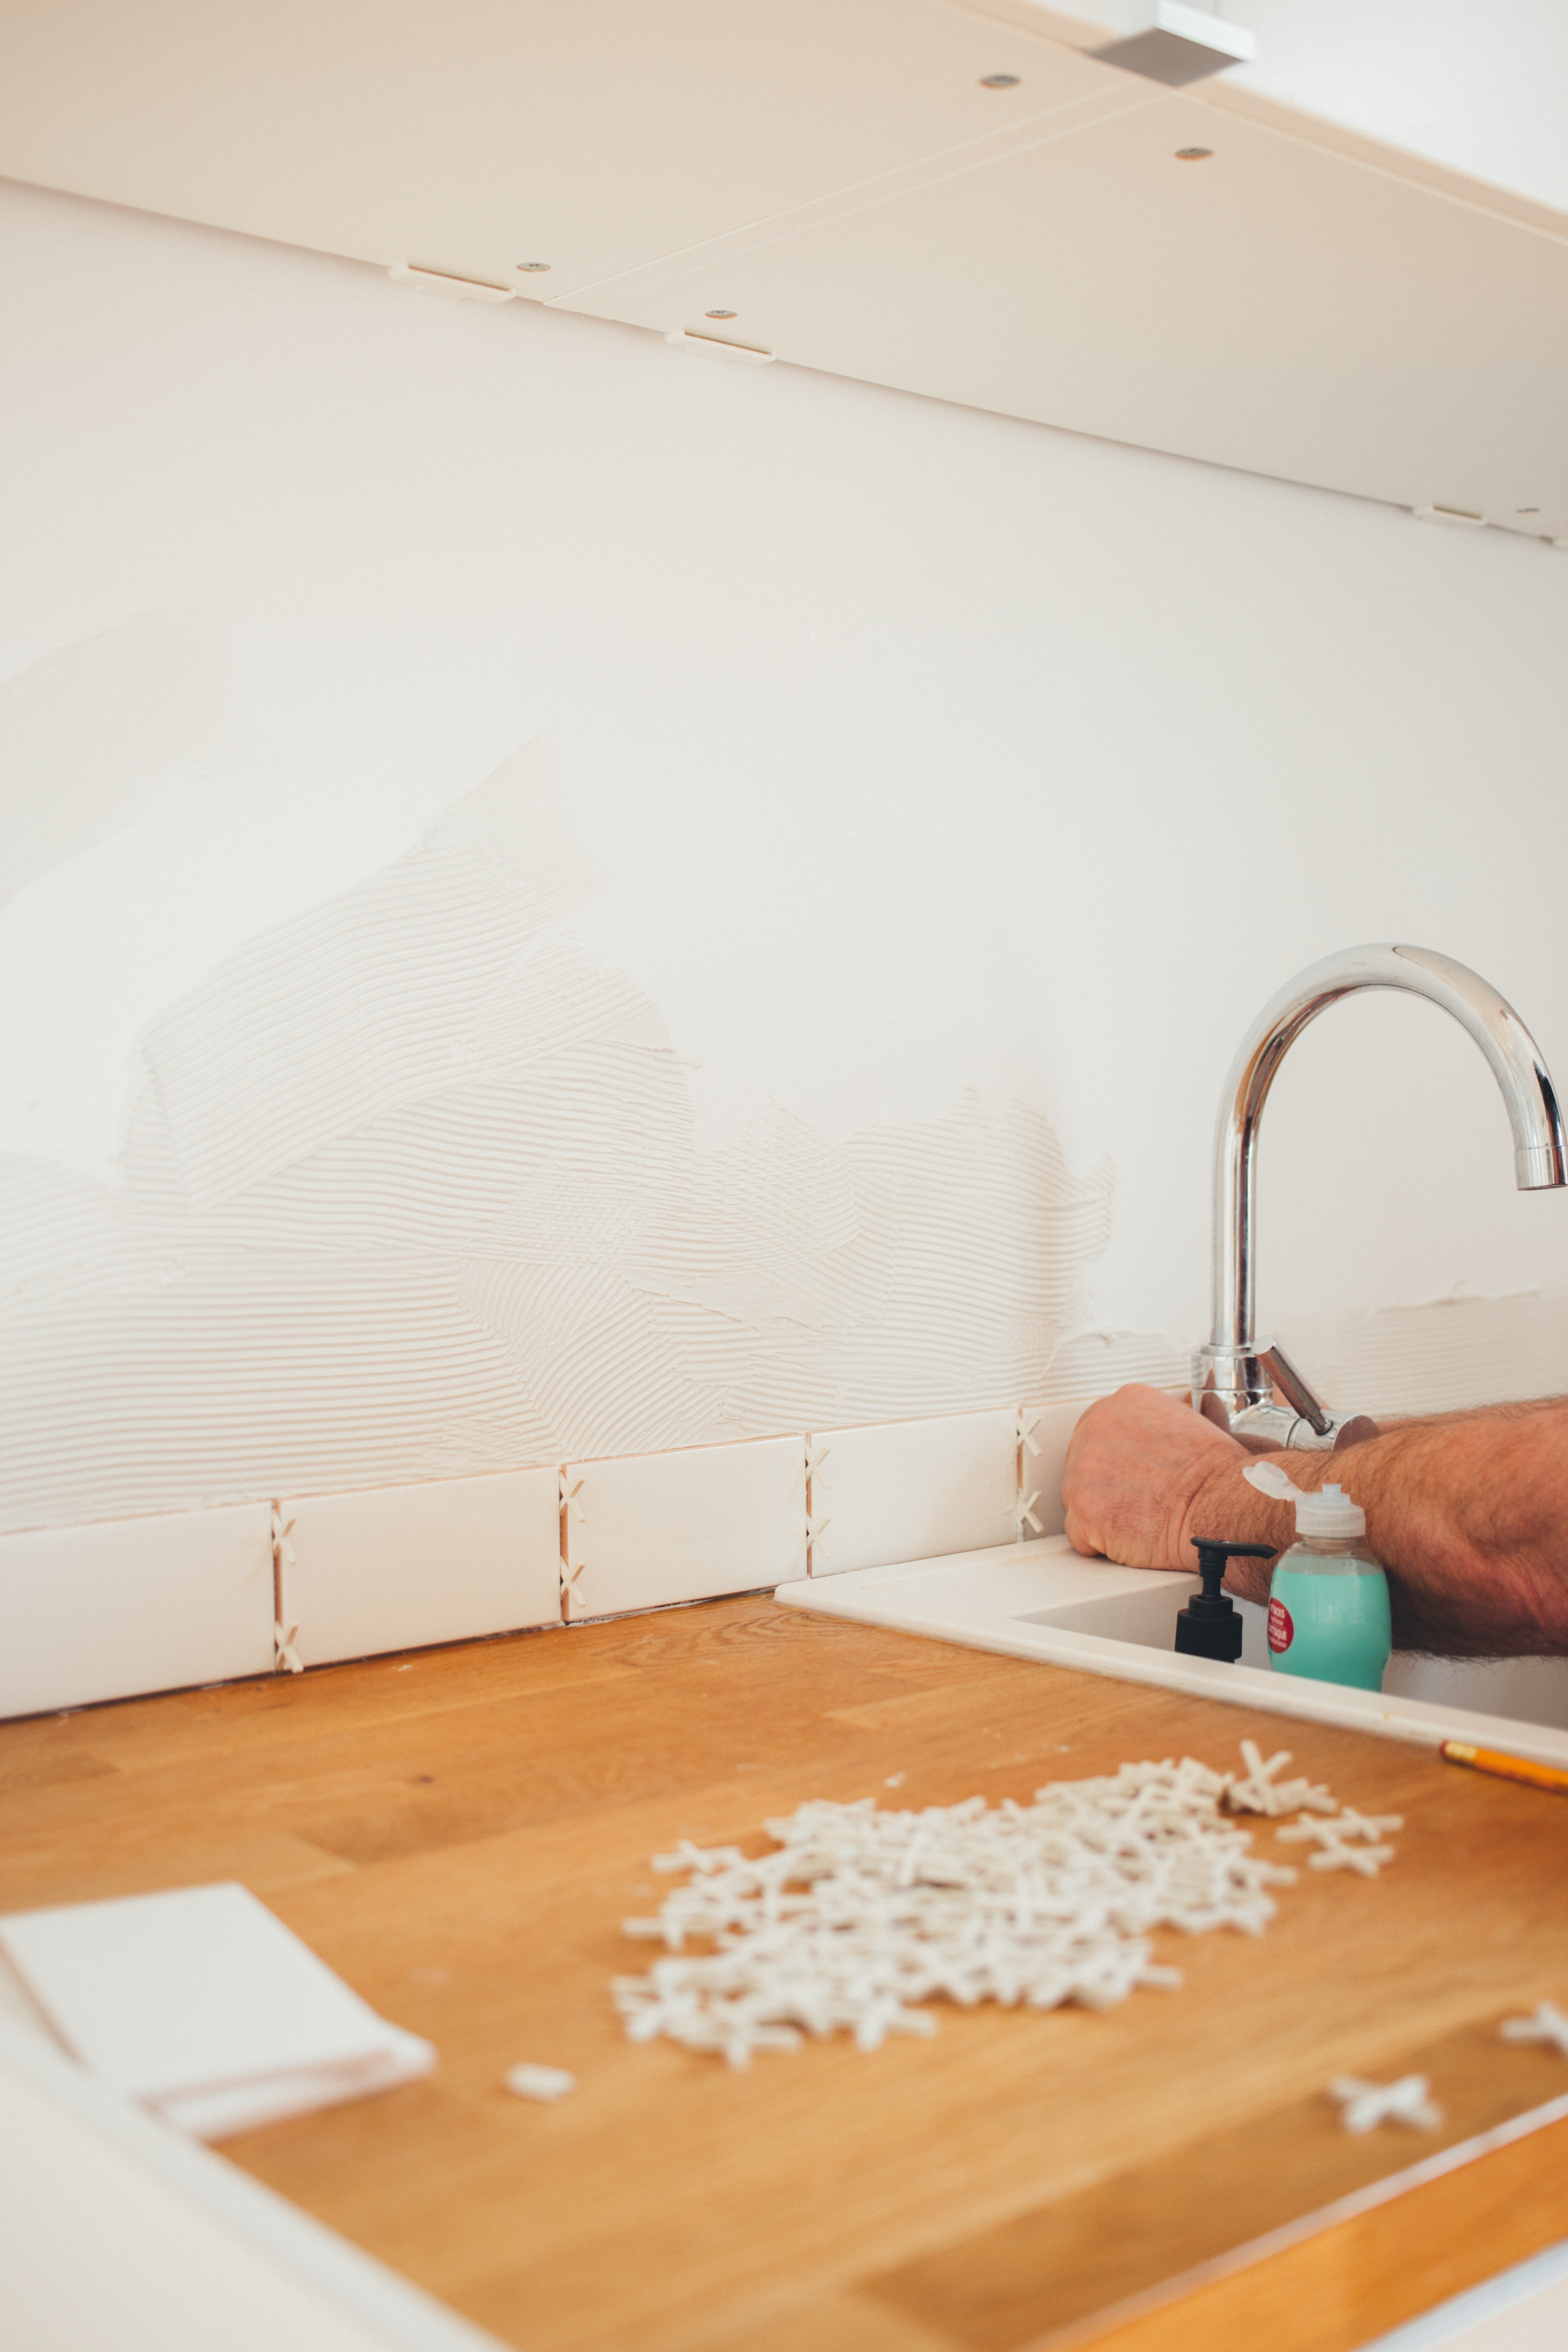 How to Get Started on Your Next Home Renovation